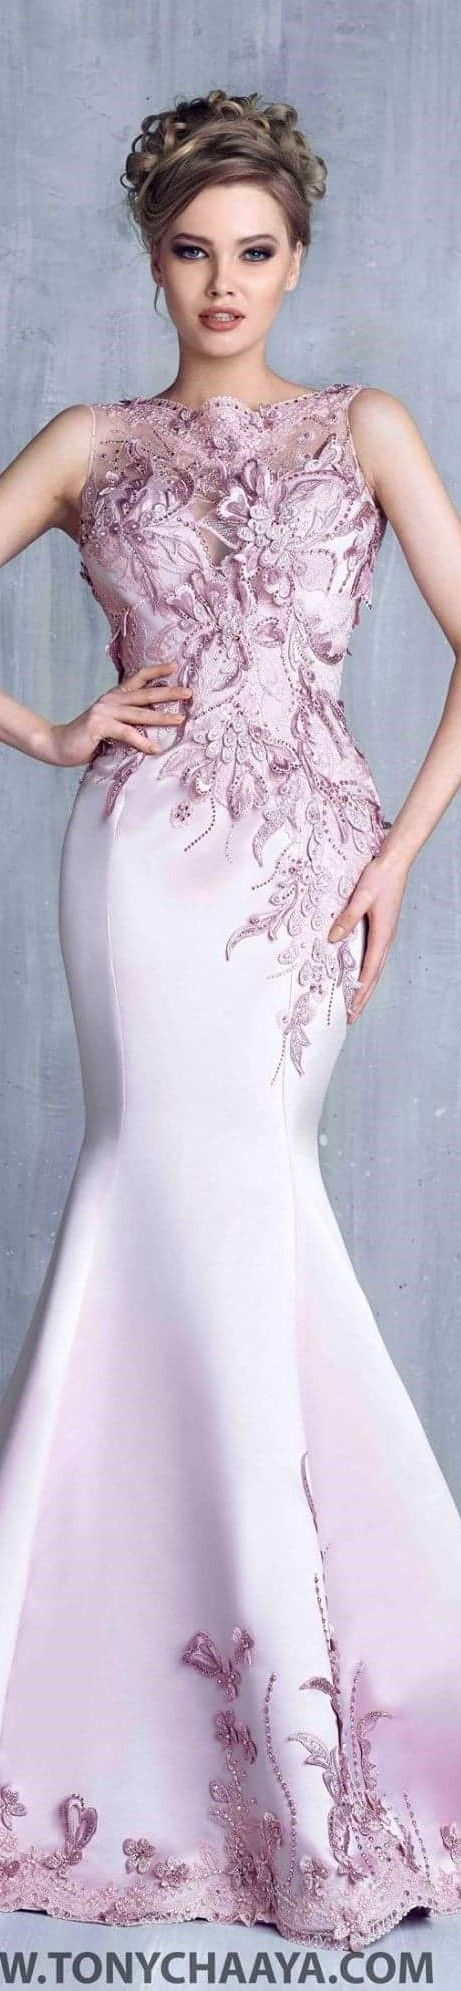 Tony chaaya couture sewing pattern pinterest couture